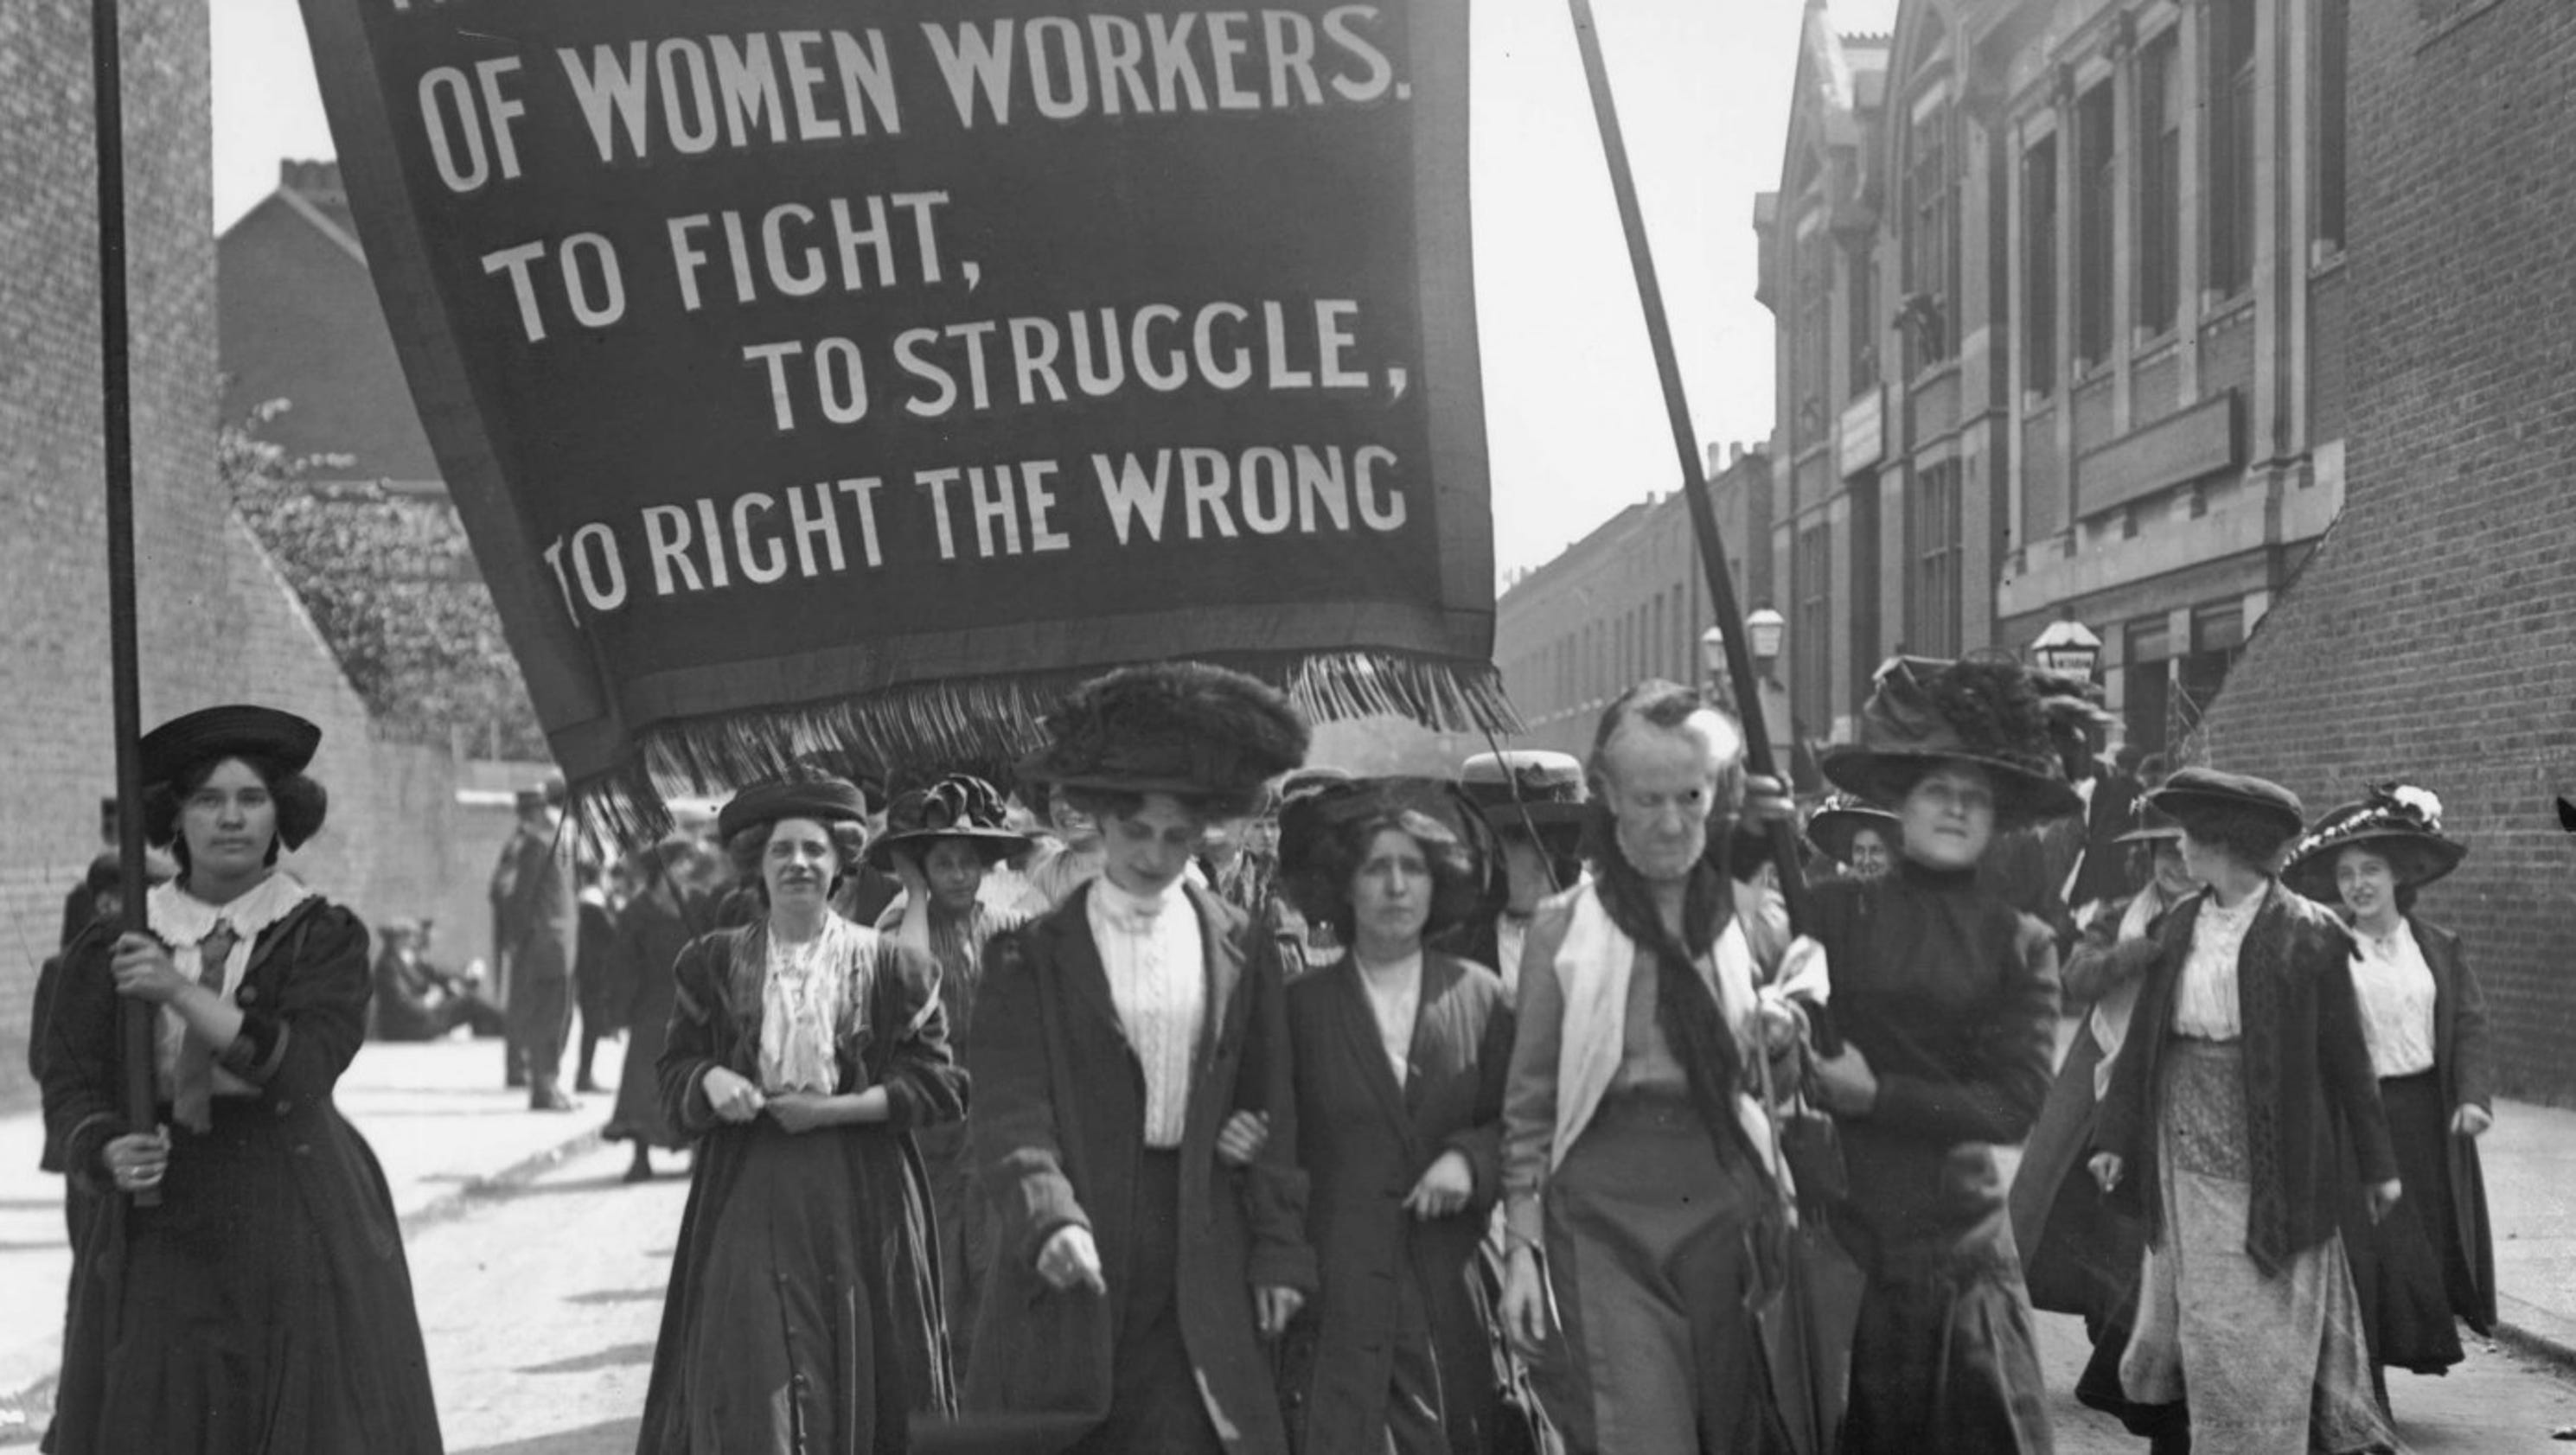 Spanning Time: Help re-enact women's suffrage parade of 1913